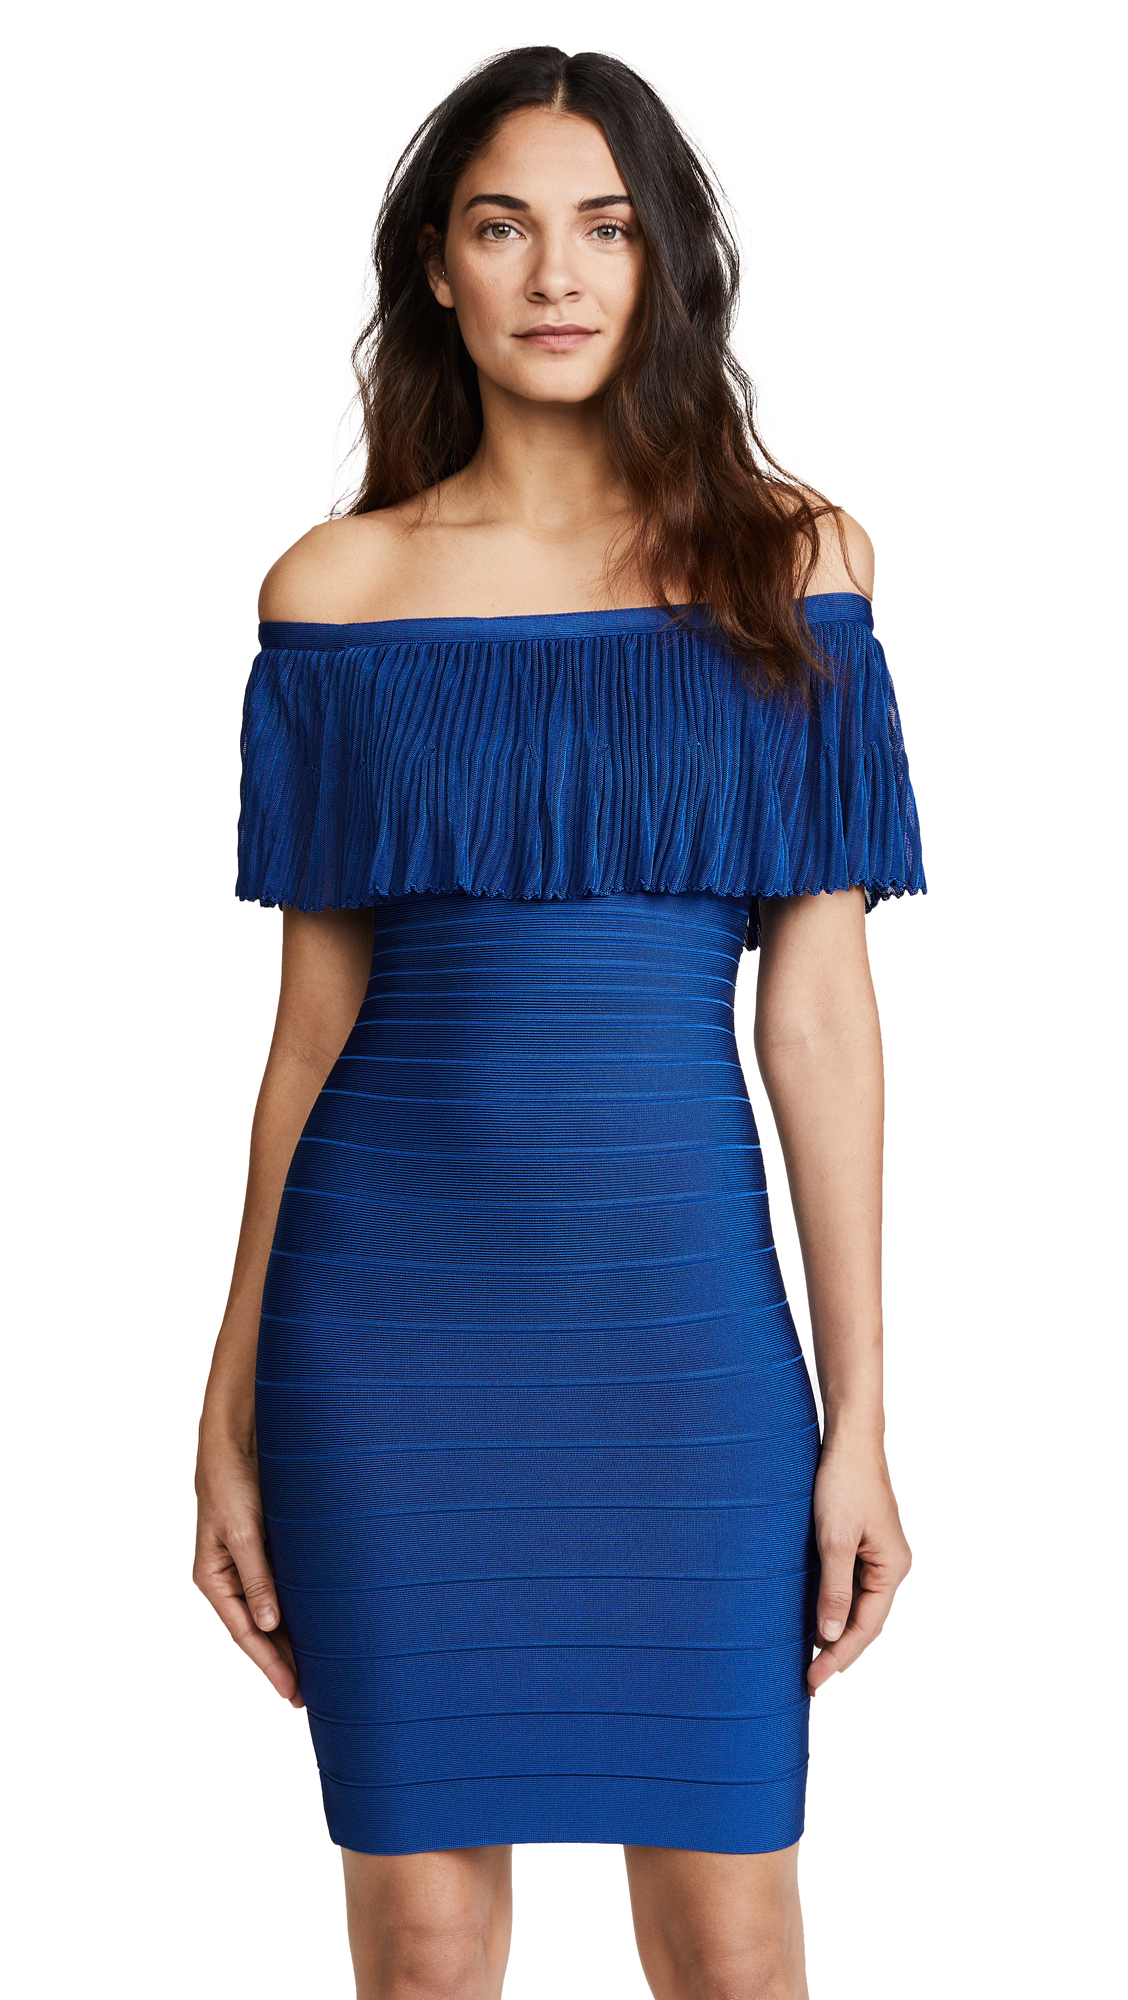 Herve Leger Lucee Dress - Lapis